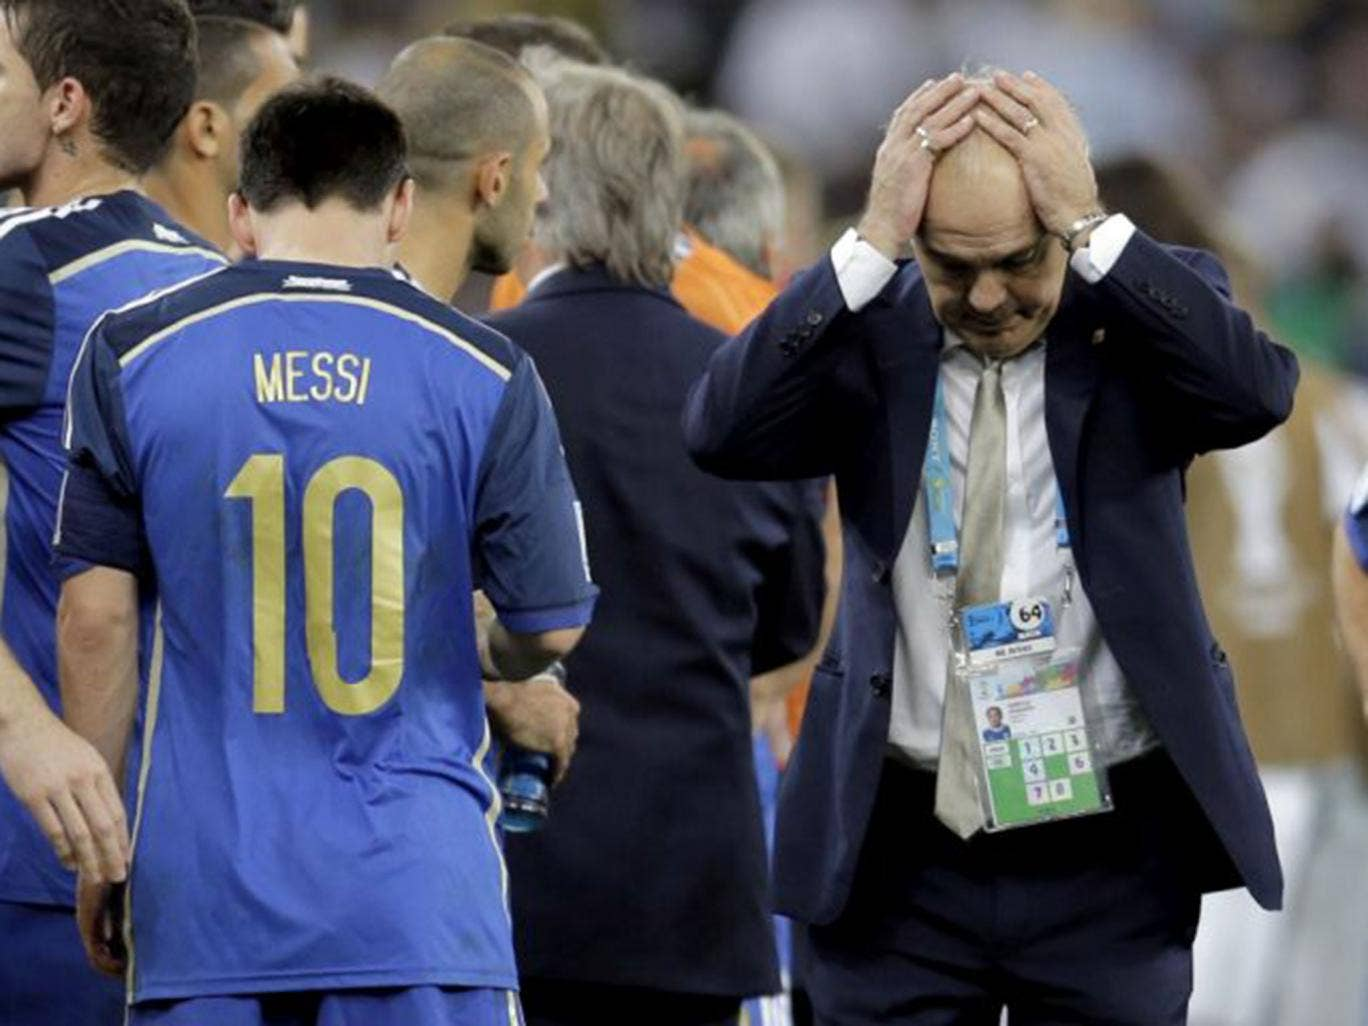 Lionel Messi appeared to walk off halfway through Alejandro Sabella's team talk